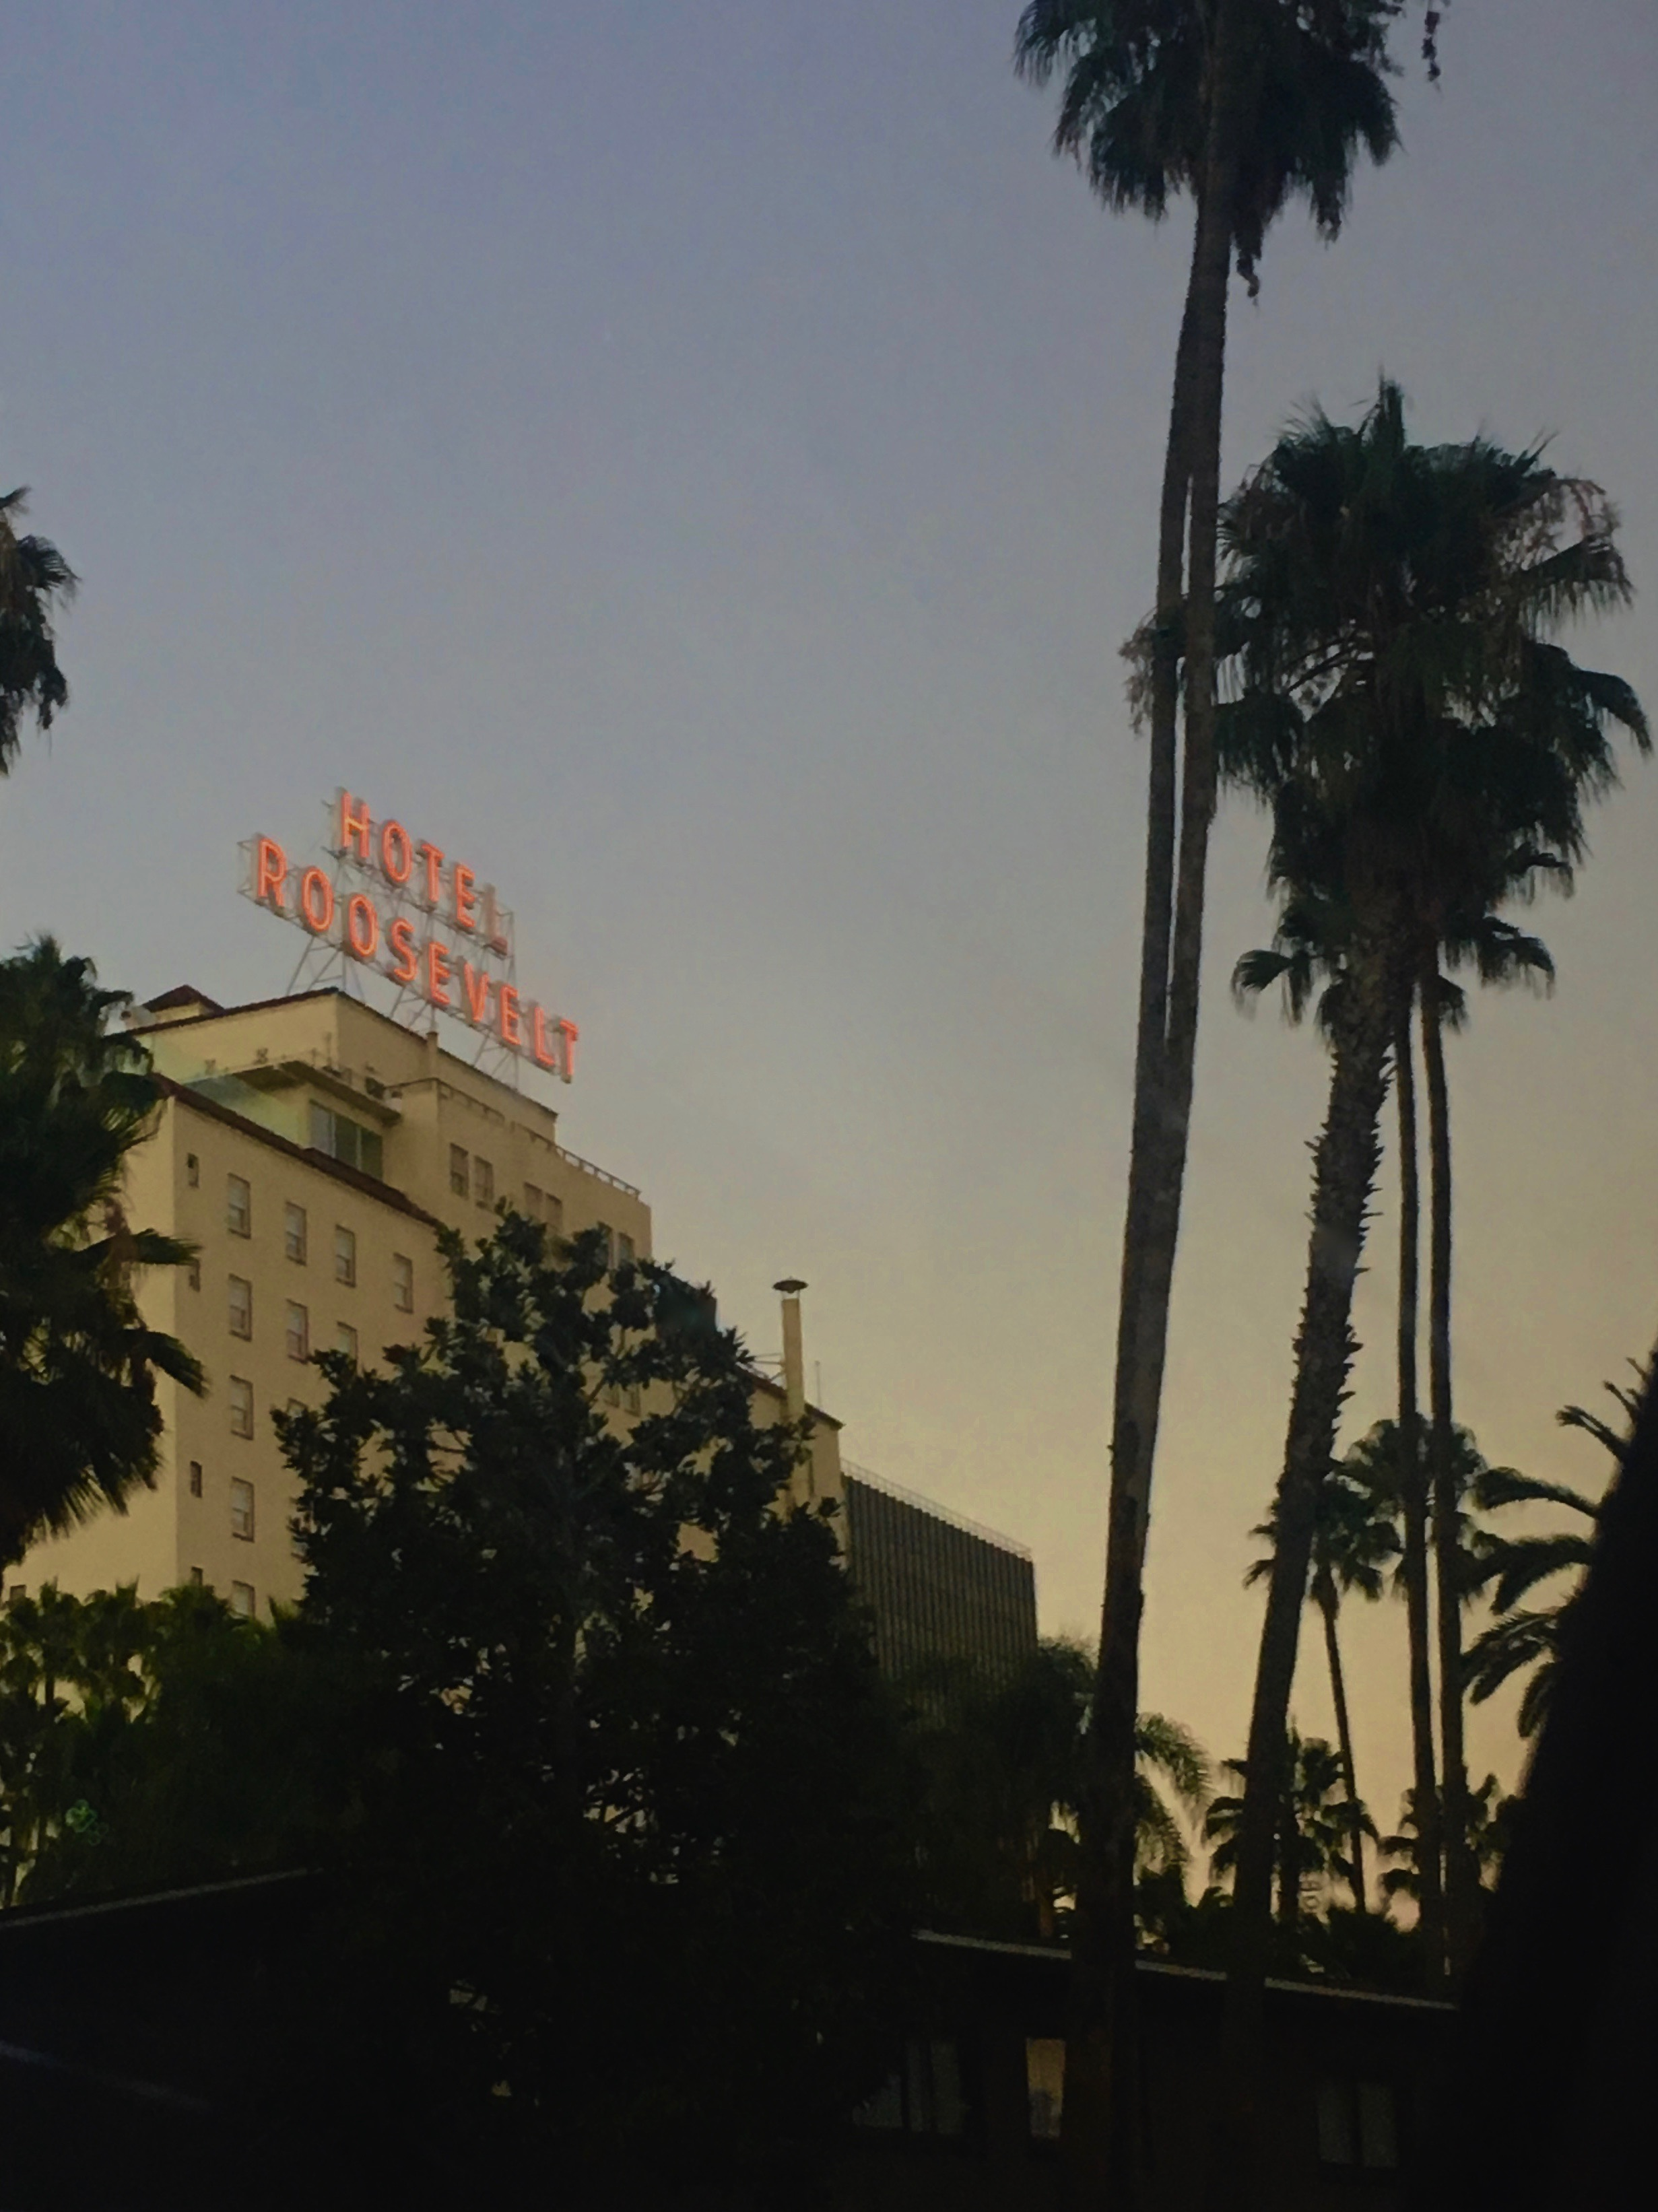 The Hollywood Roosevelt (photo by Meghan Ianiro)